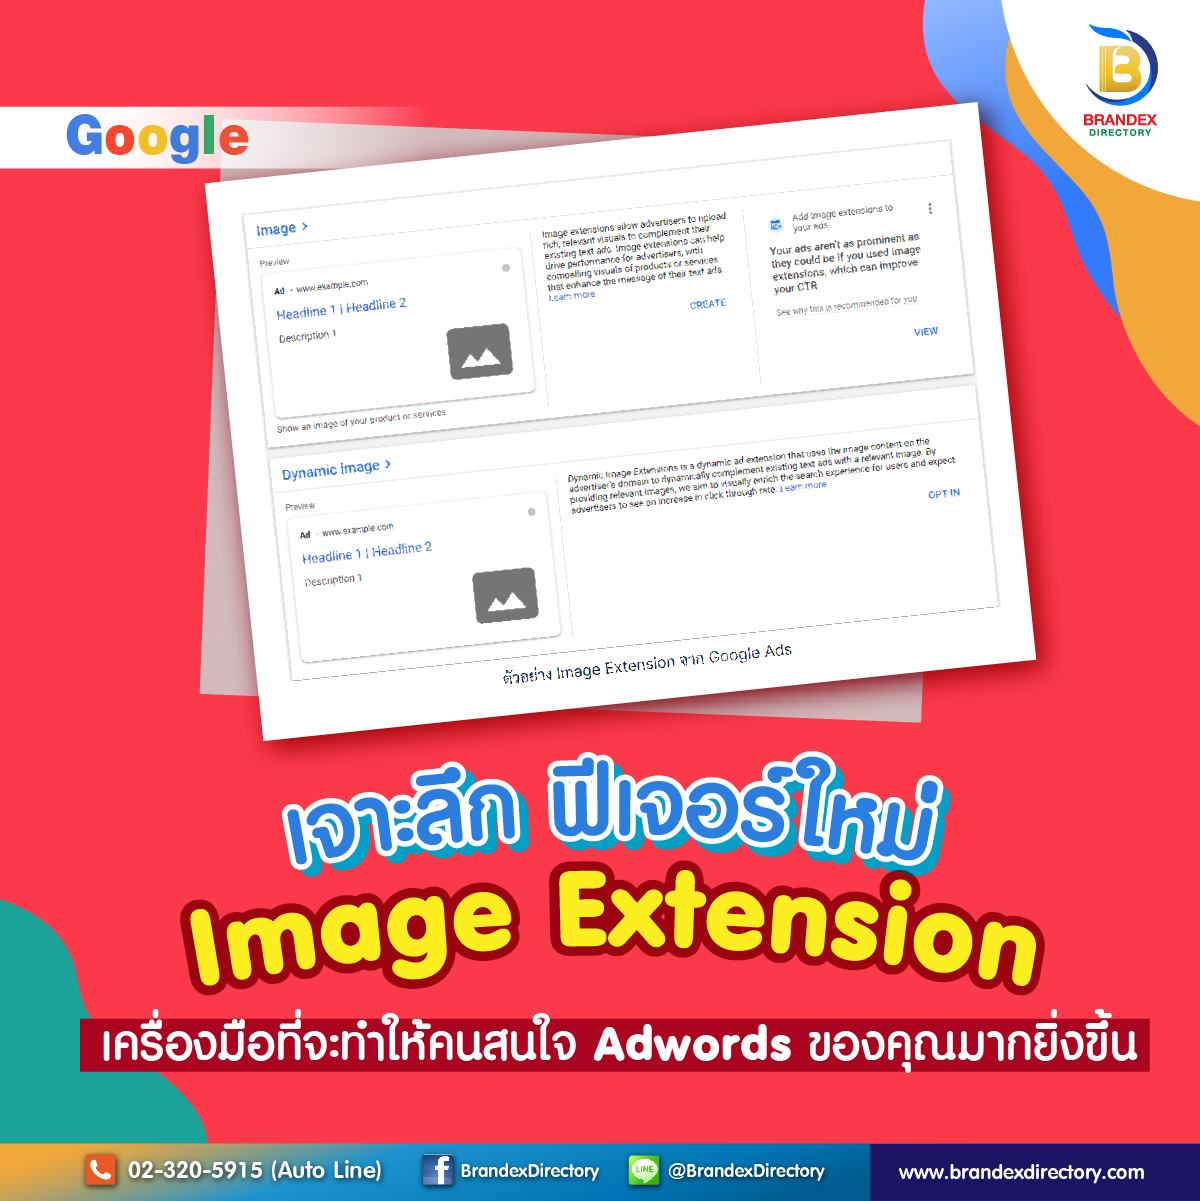 Image Extension